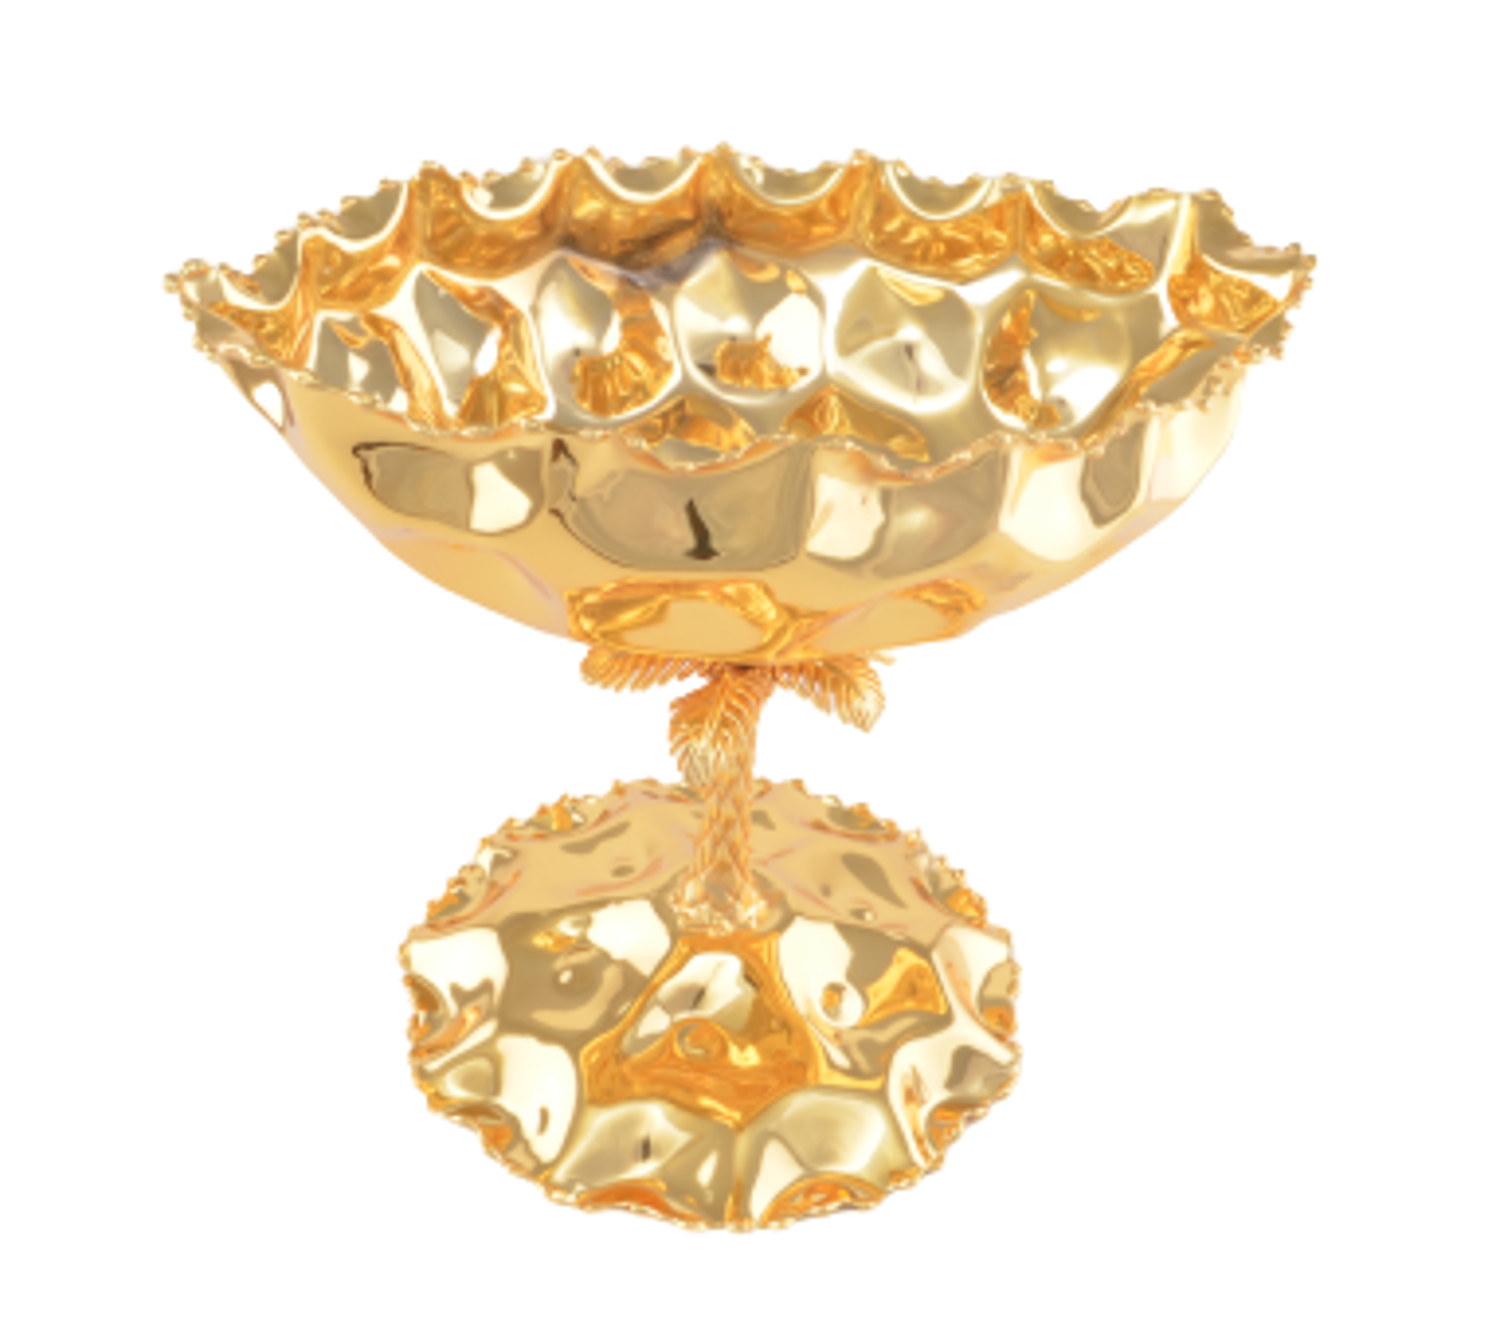 Picture of MEVLANA BOWL FOOTED GONDOLA GOLD